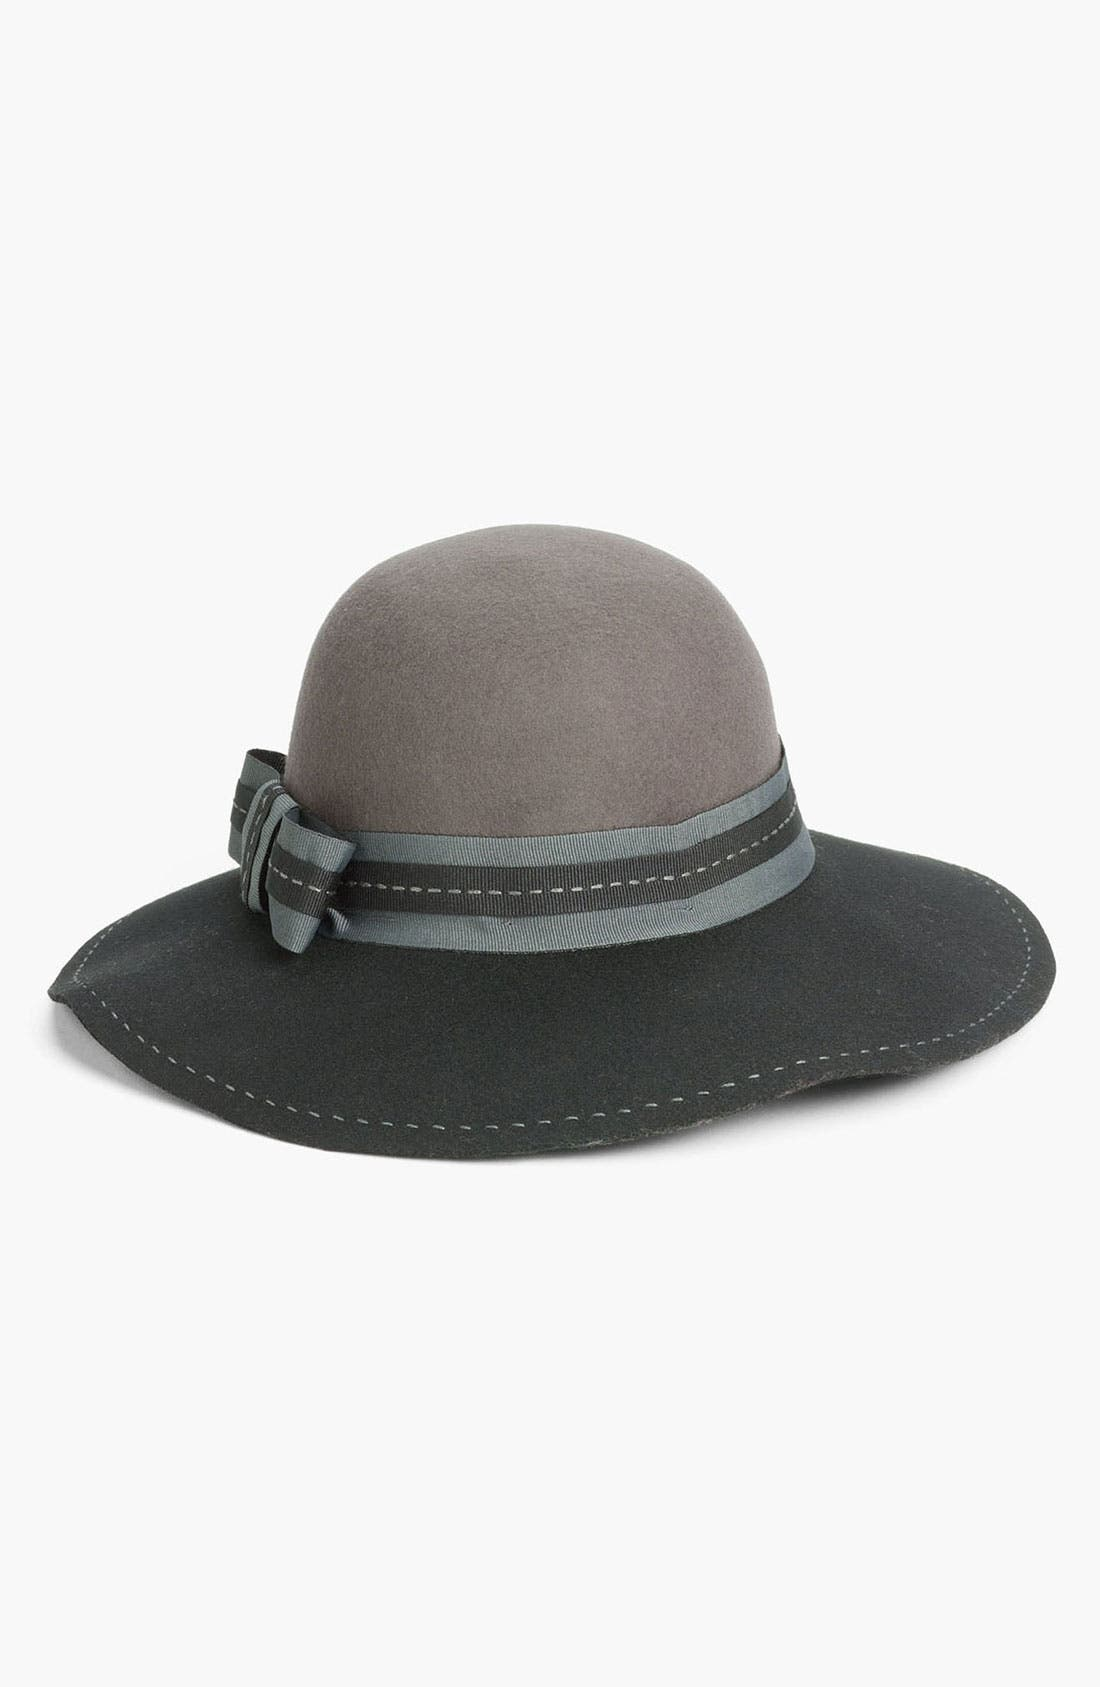 Alternate Image 1 Selected - Nordstrom Two Tone Floppy Wool Hat